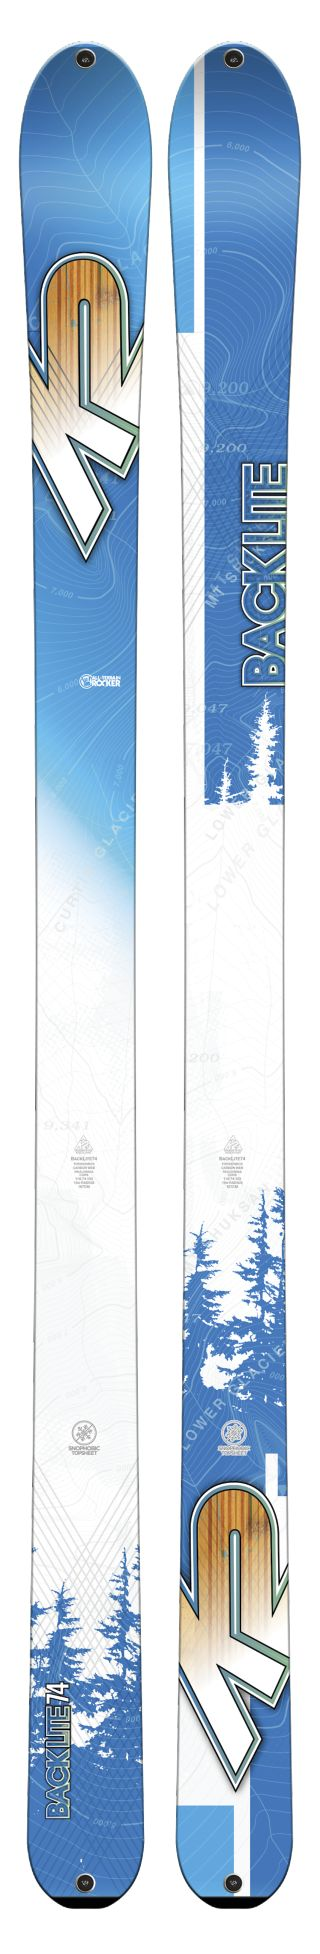 K2 Skis - Backlite 74 Ski